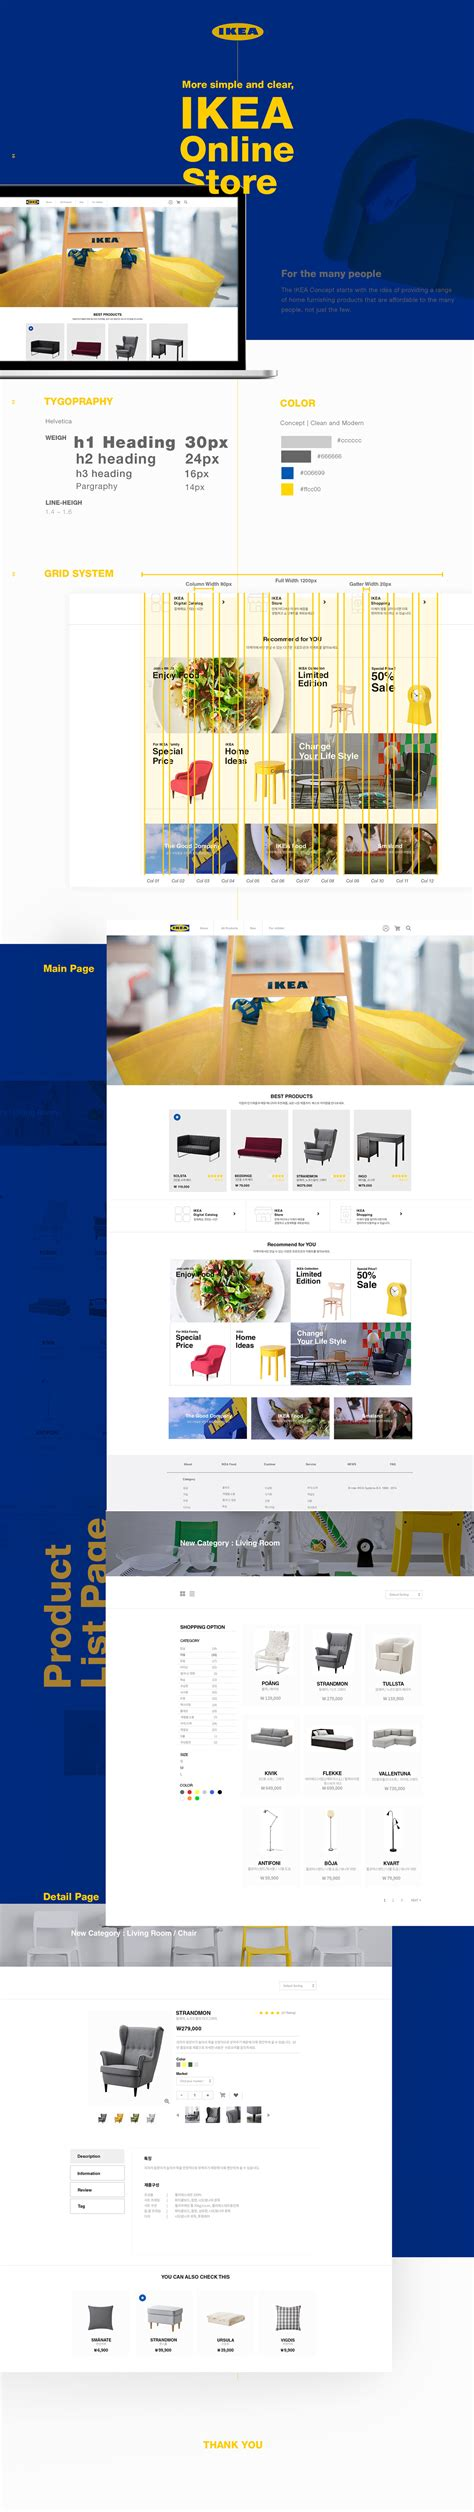 ikea redesign wed ikea redesign 브랜딩 편집 ui ux